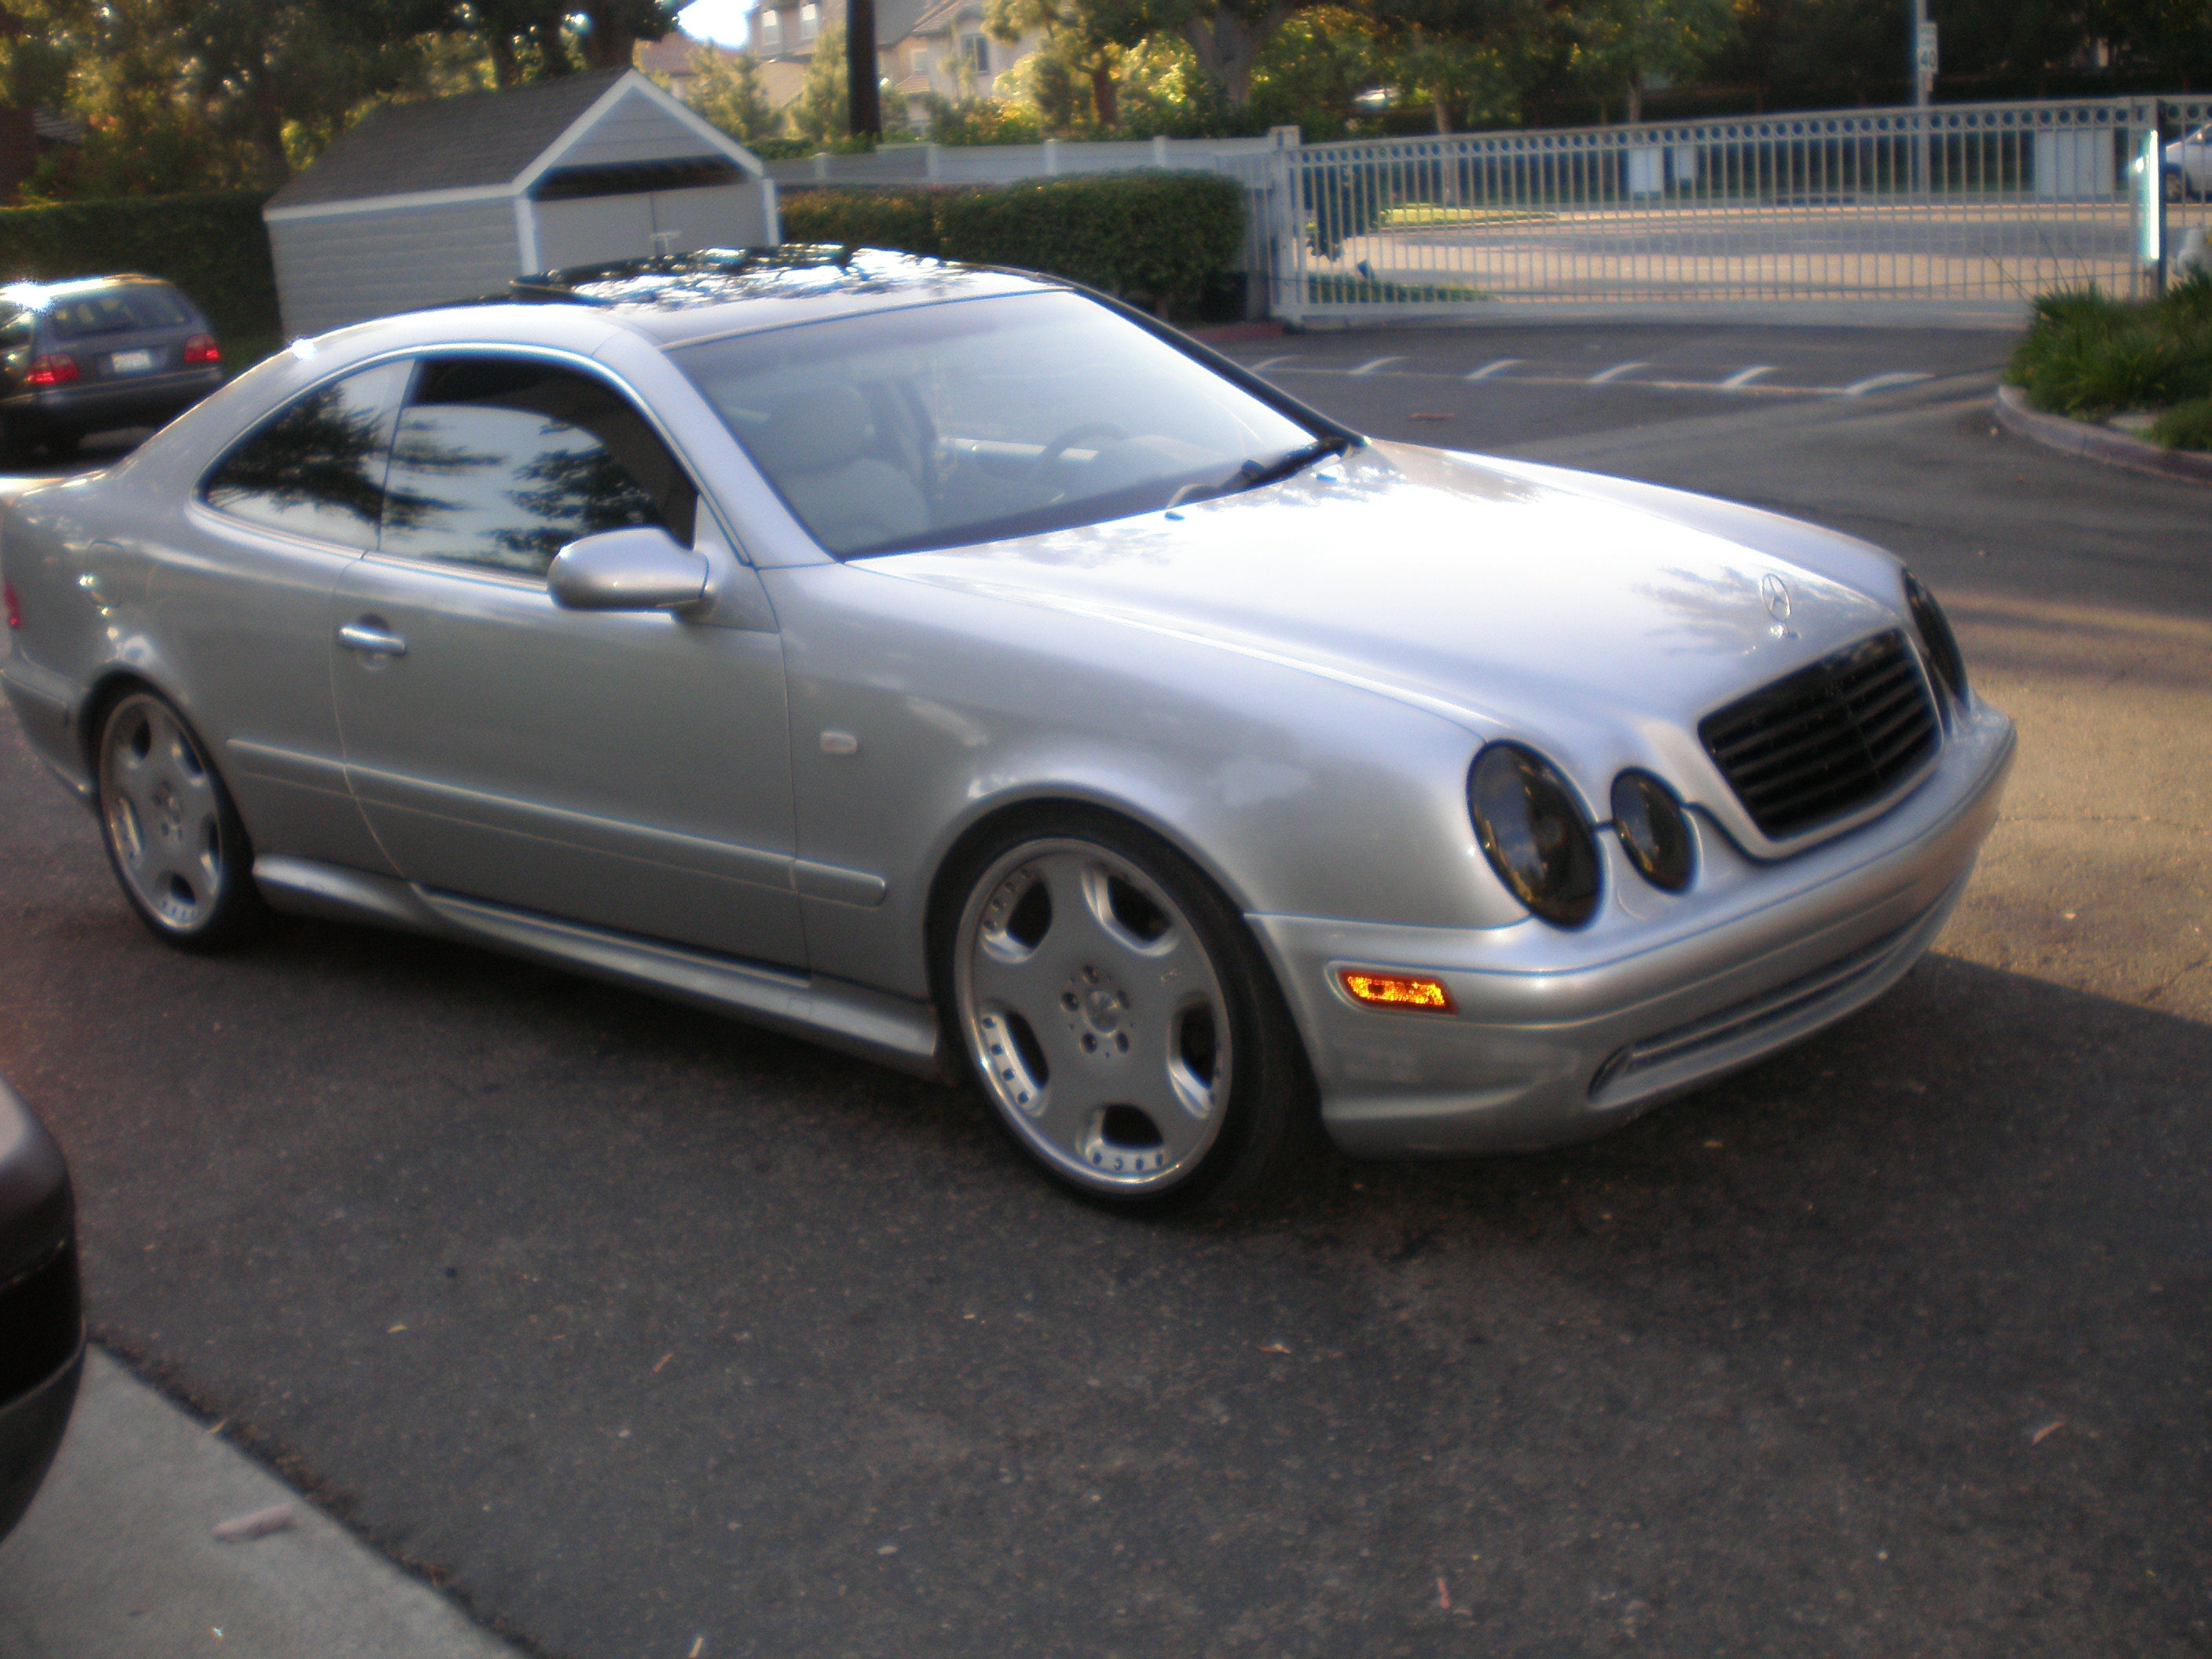 service manual  1999 mercedes benz clk class chassis manual  1999 mercedes benz clk class Suzuki Forenza Owner's Manual Repair Manual for Suzuki Forenza